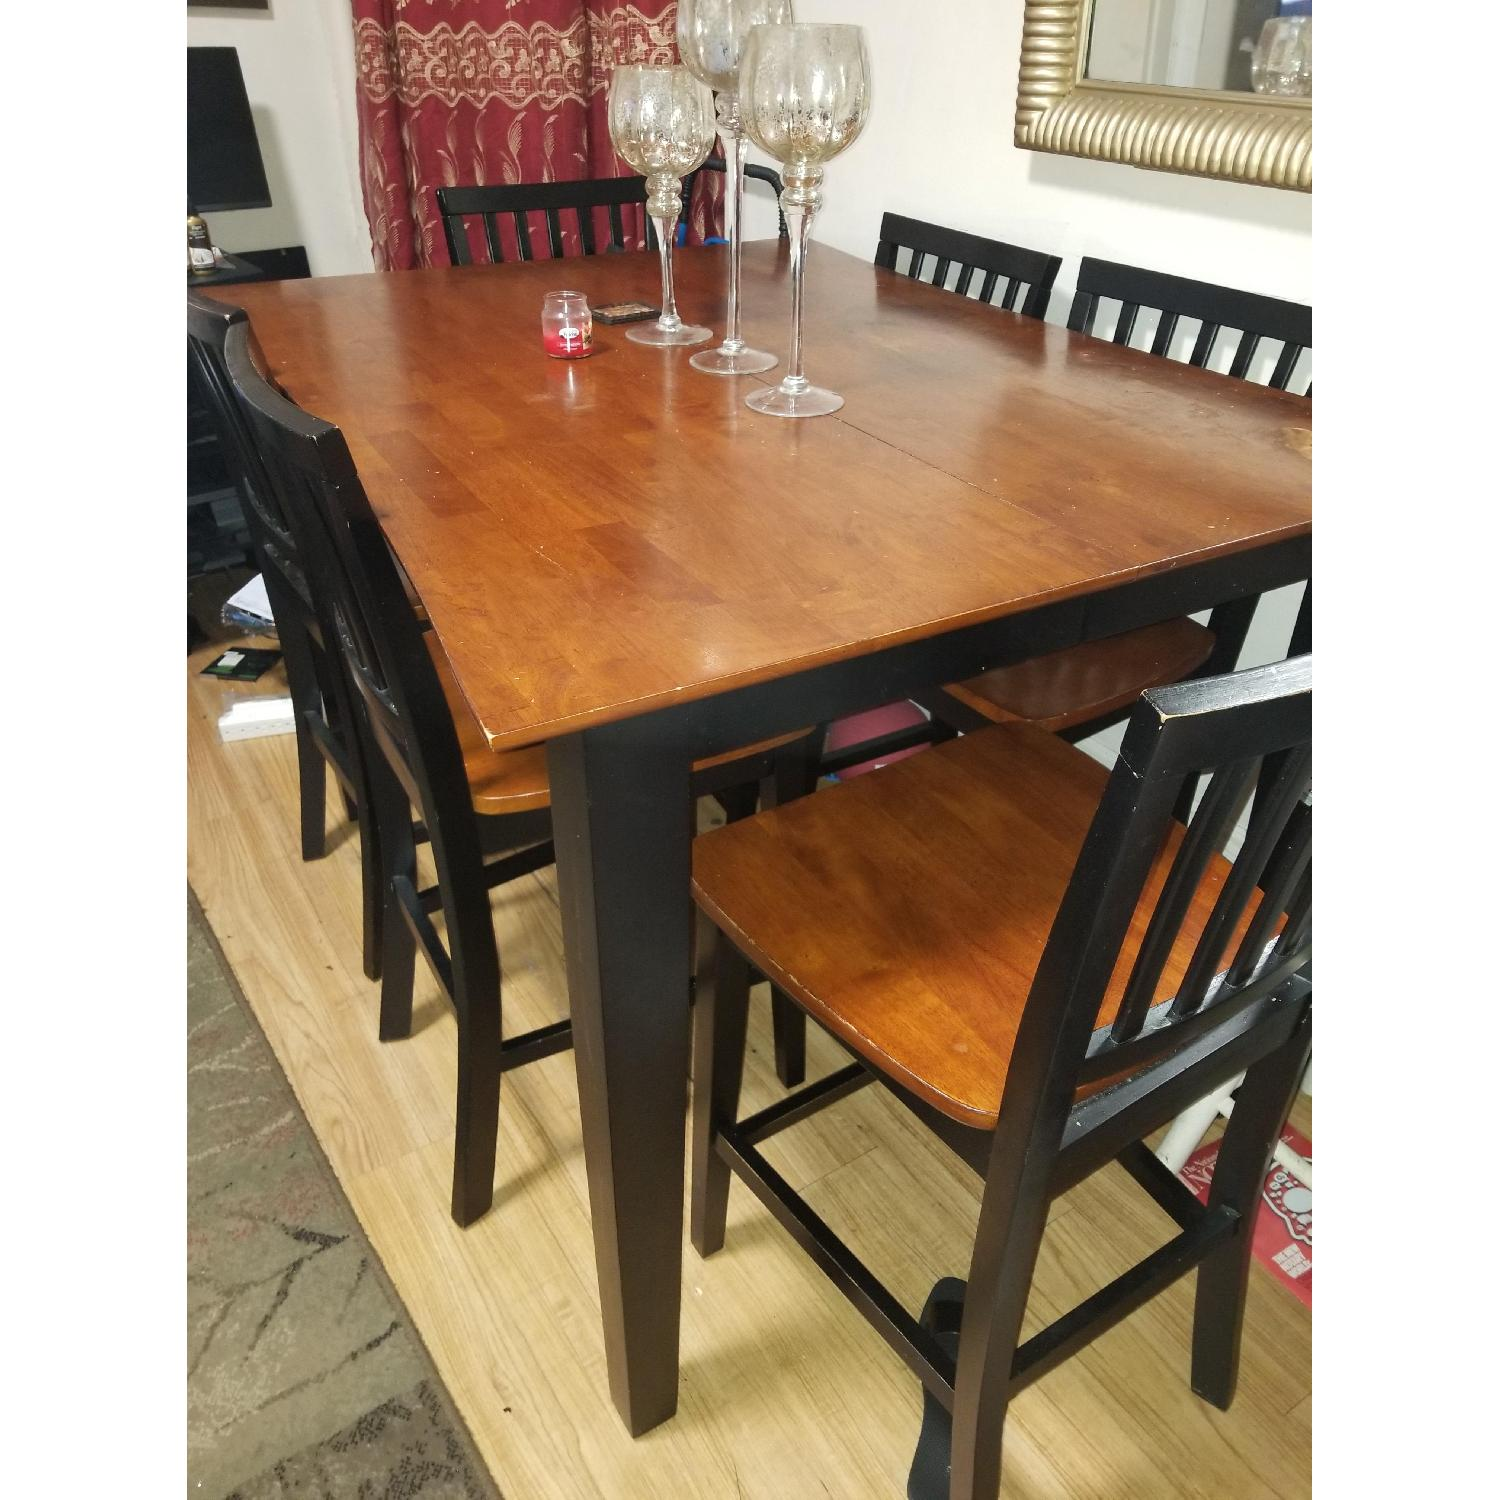 Bob's Montibello Dining Table w/ 6 Chairs - image-0